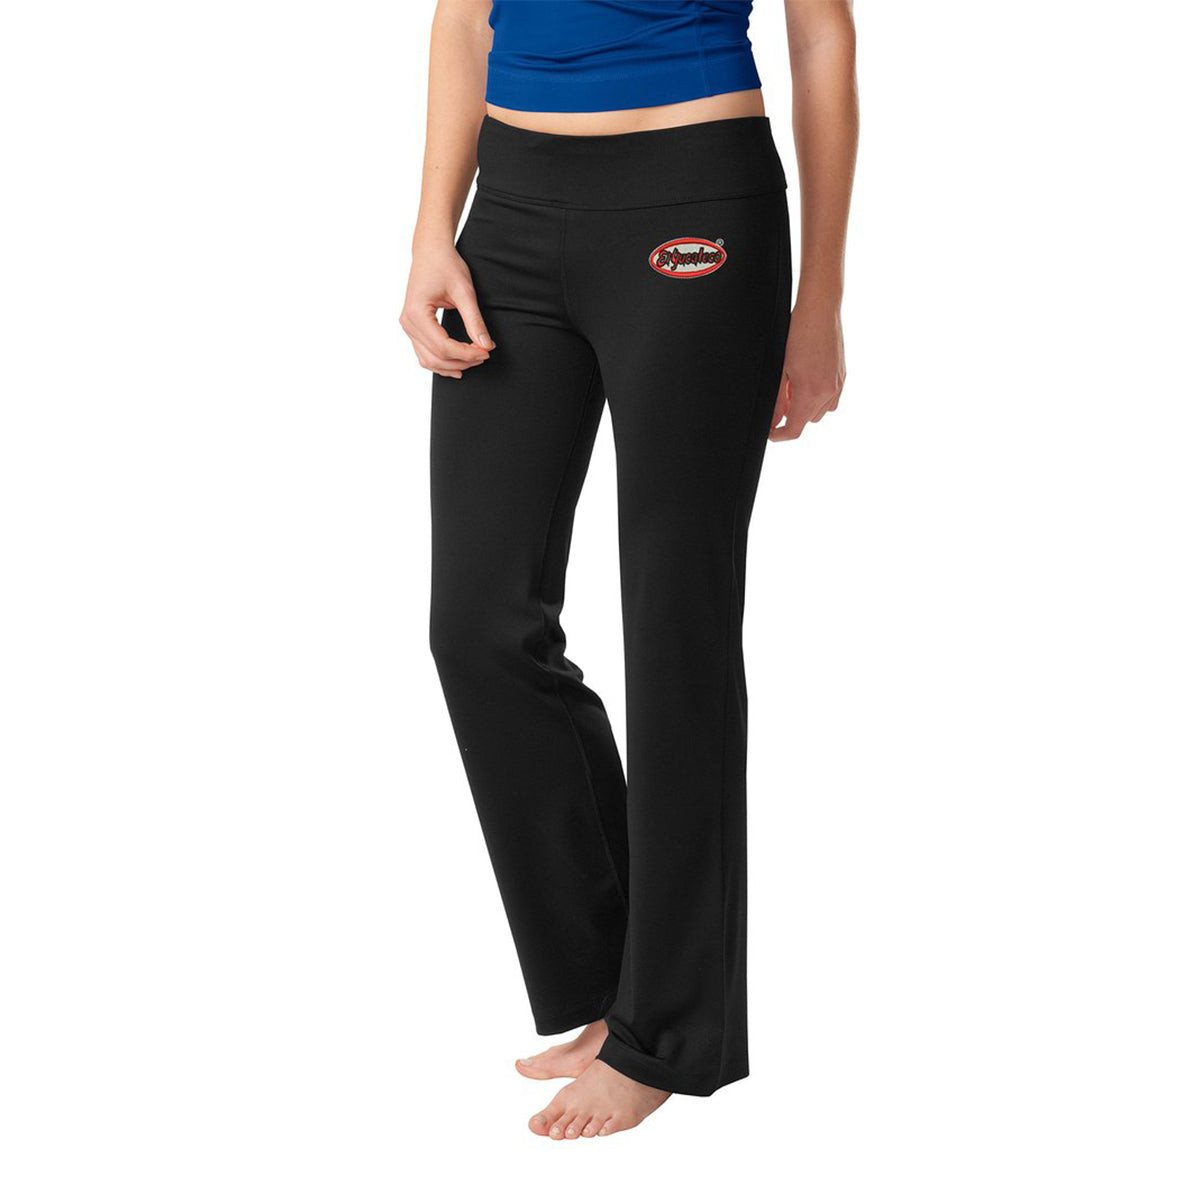 8081faaaf3726 El Yucateco Ladies Embroidered Yoga Pants — El Yucateco Gear Shop